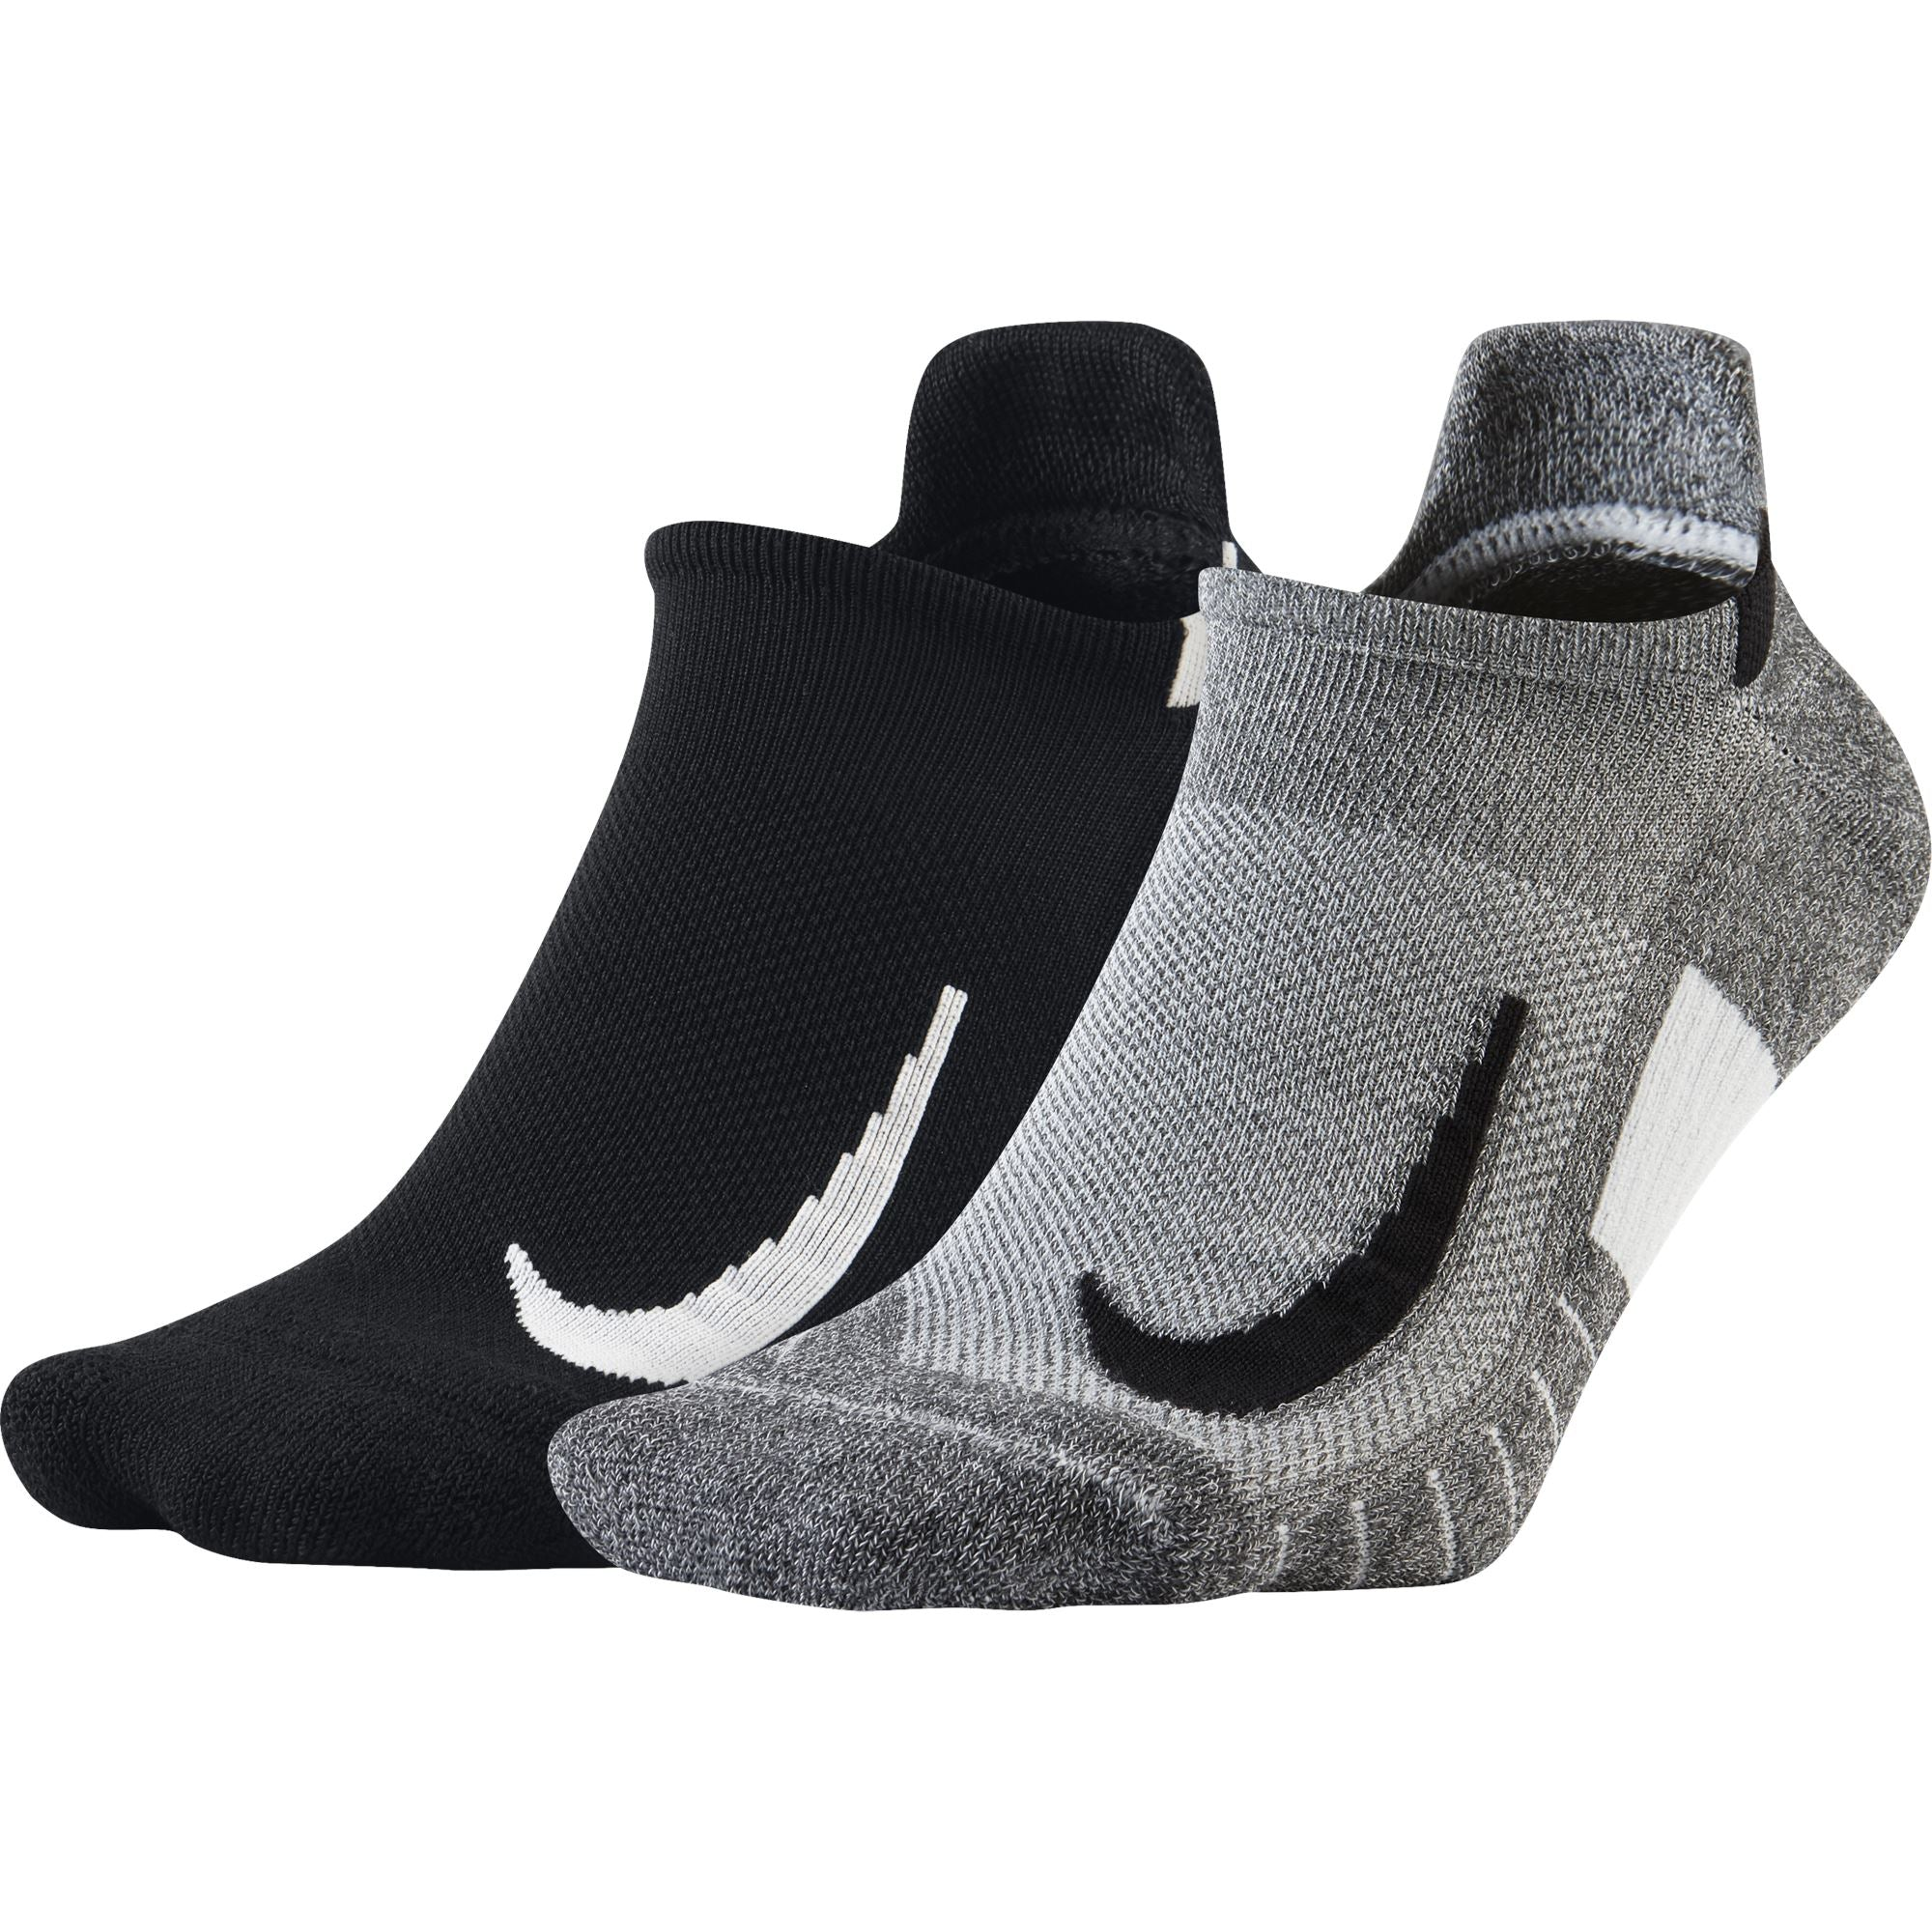 Nike Multiplier No-Show Running Socks - Multi-Color Socks Nike